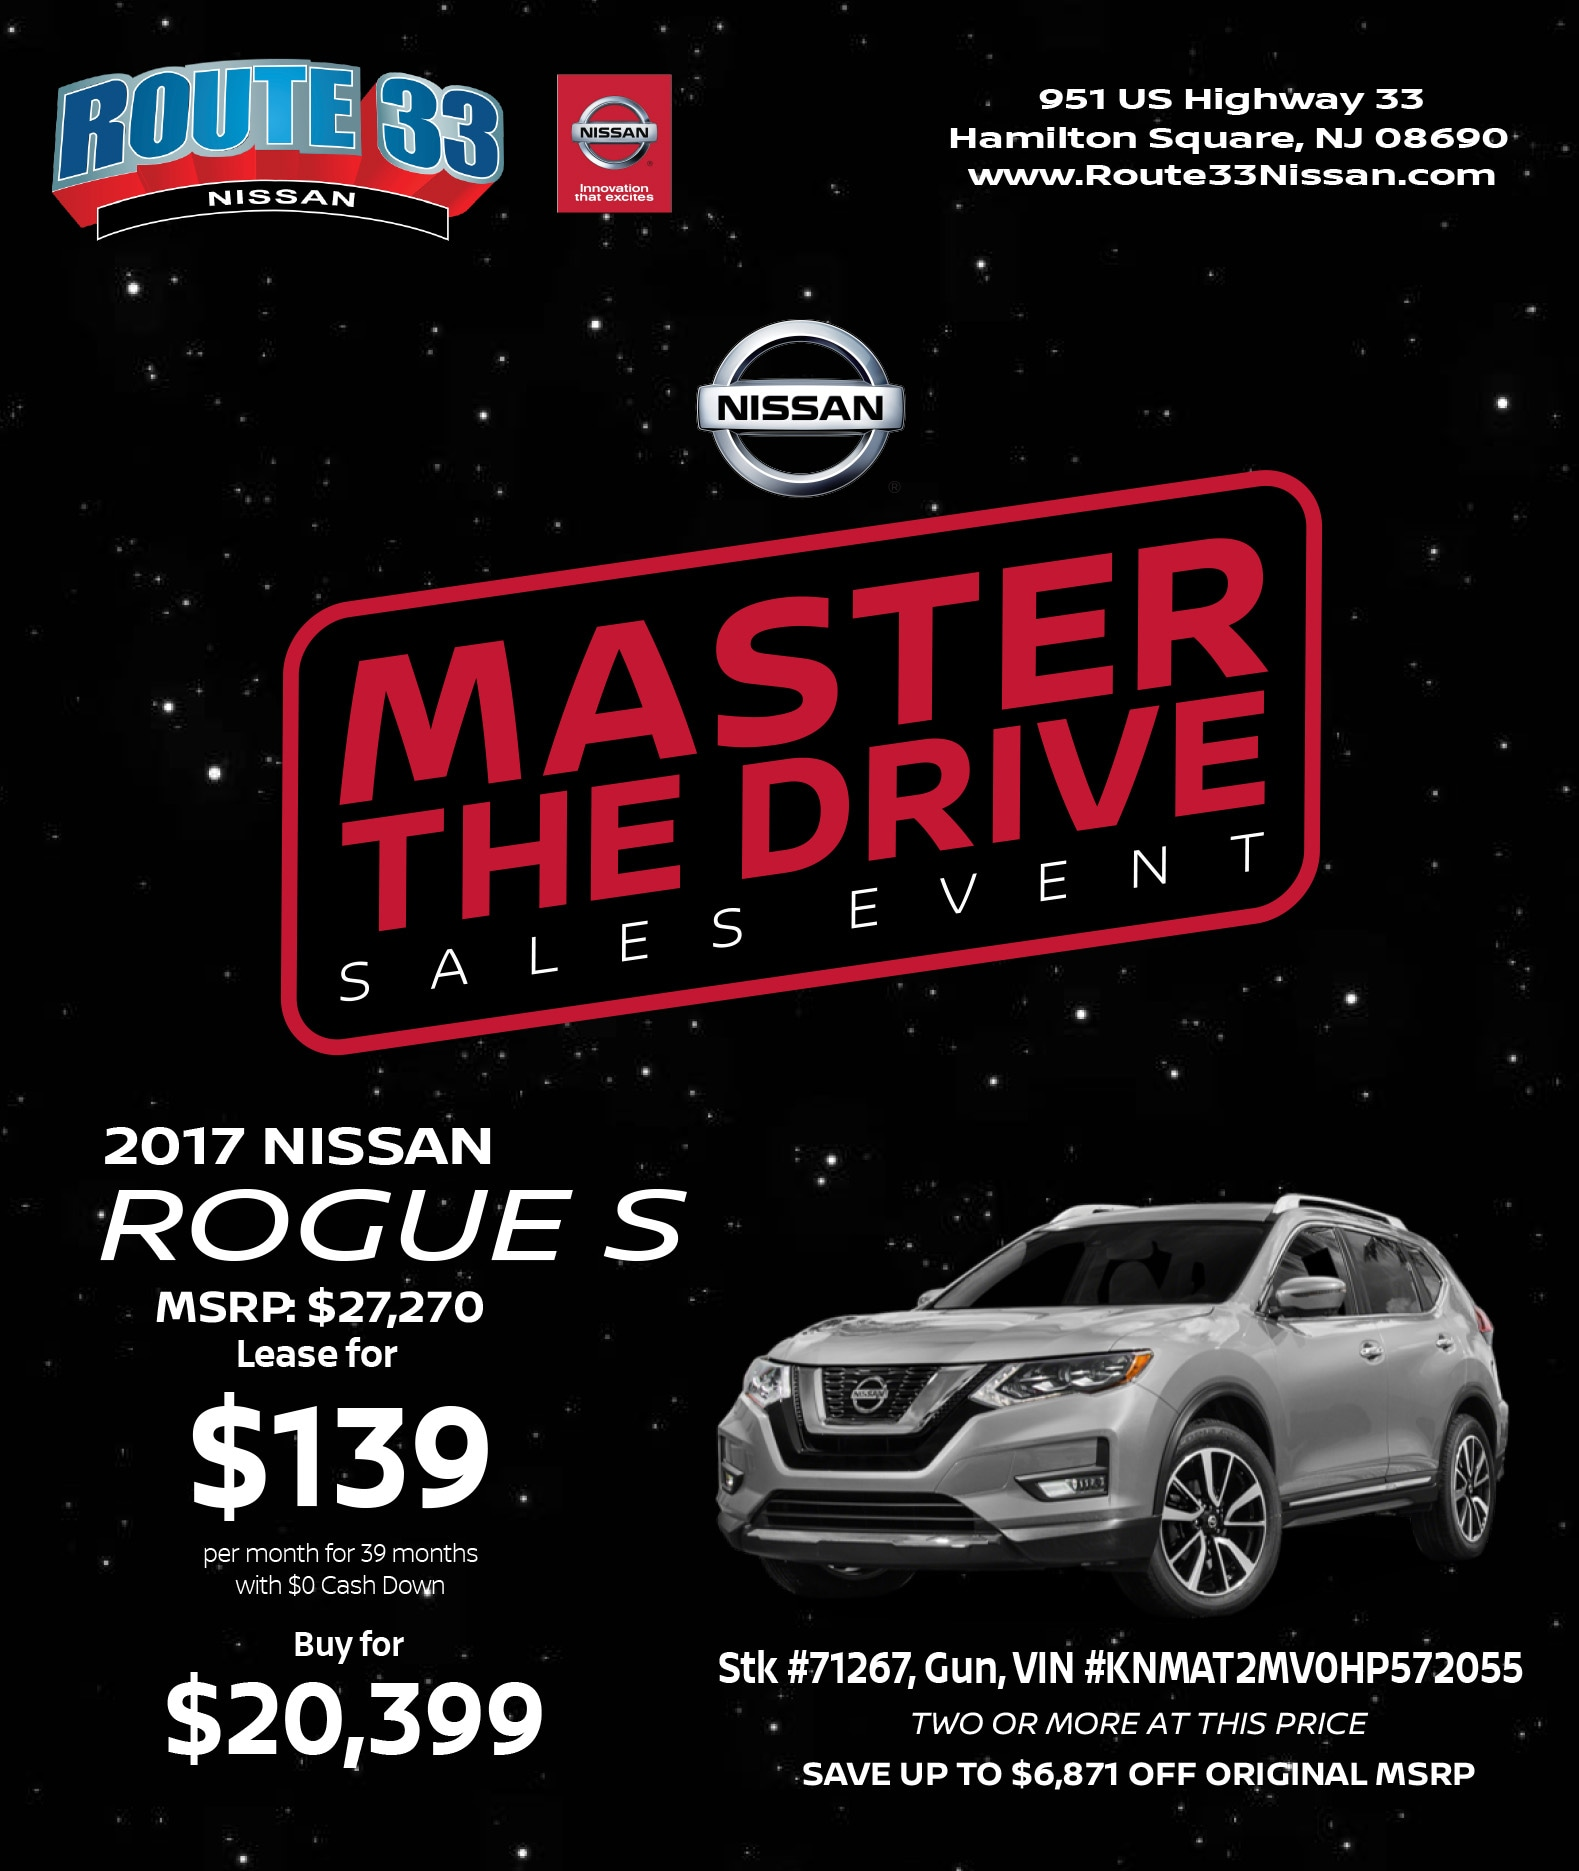 Rt 33 Nissan >> Master The Drive Rogue One Specials Route 33 Nissan